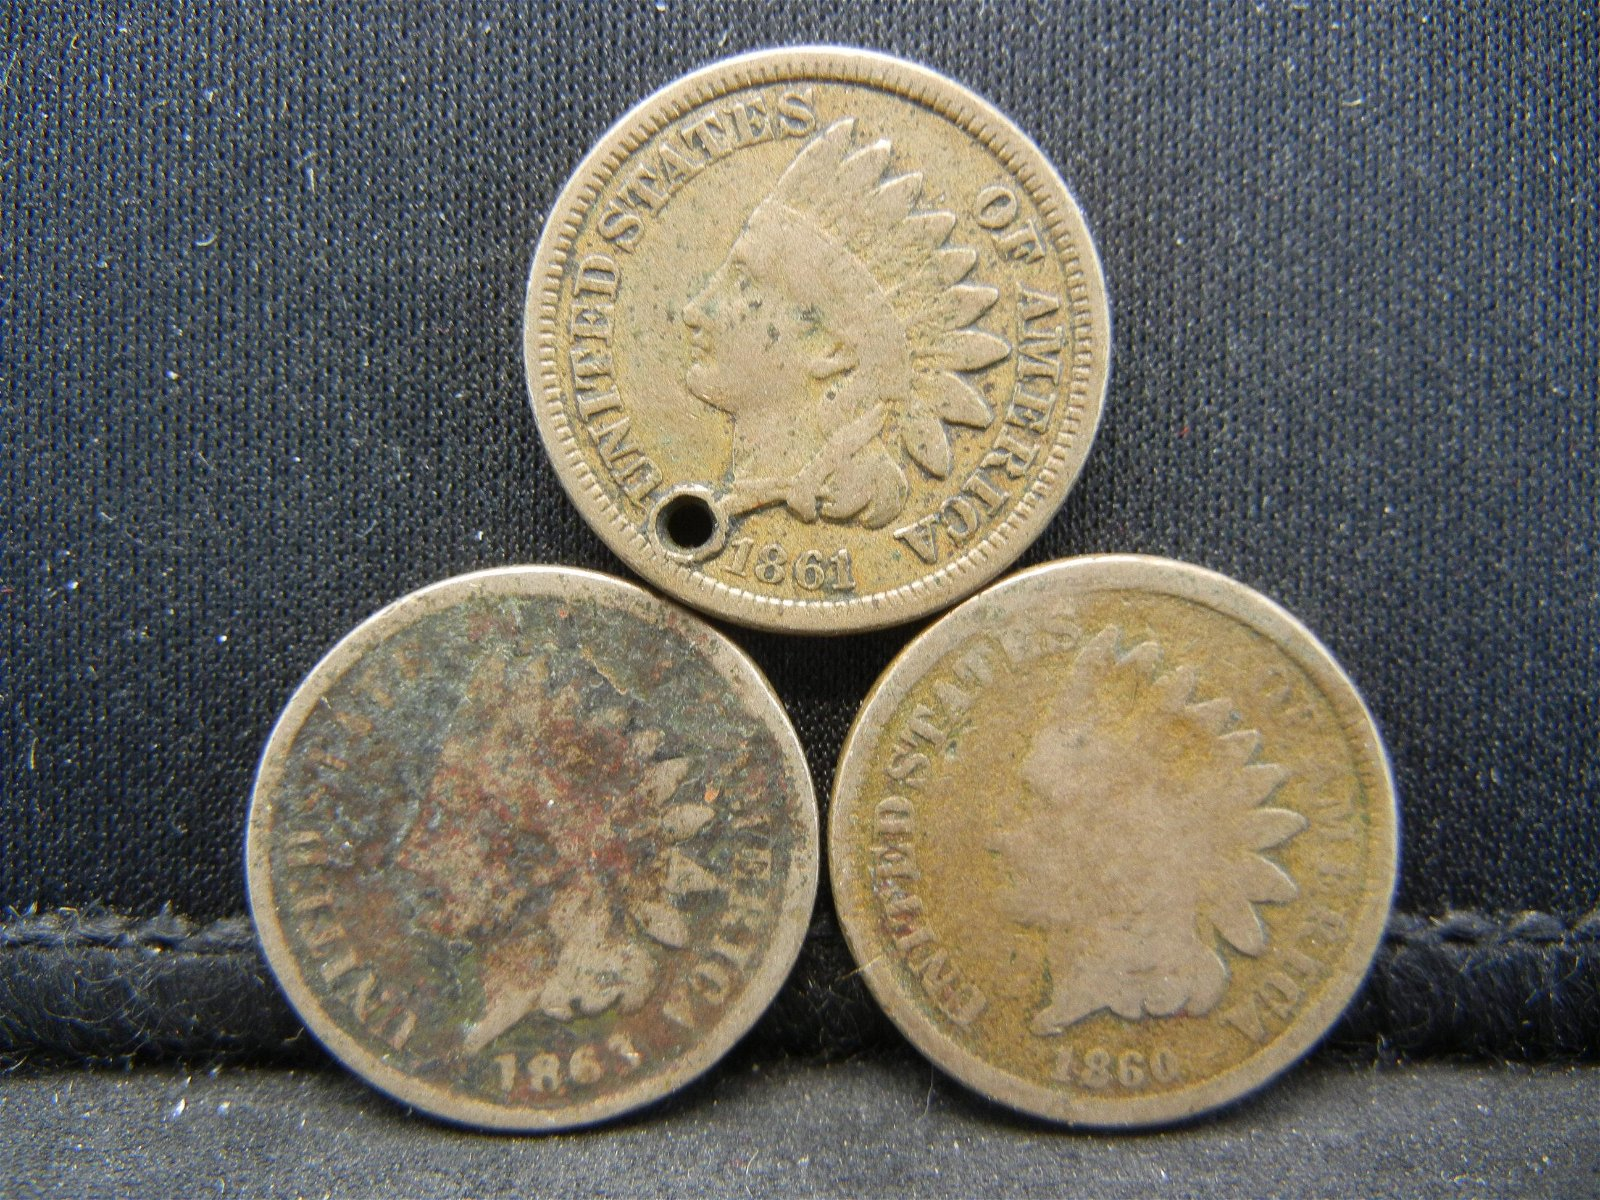 1860, 61 and 63 Indian Head Cents